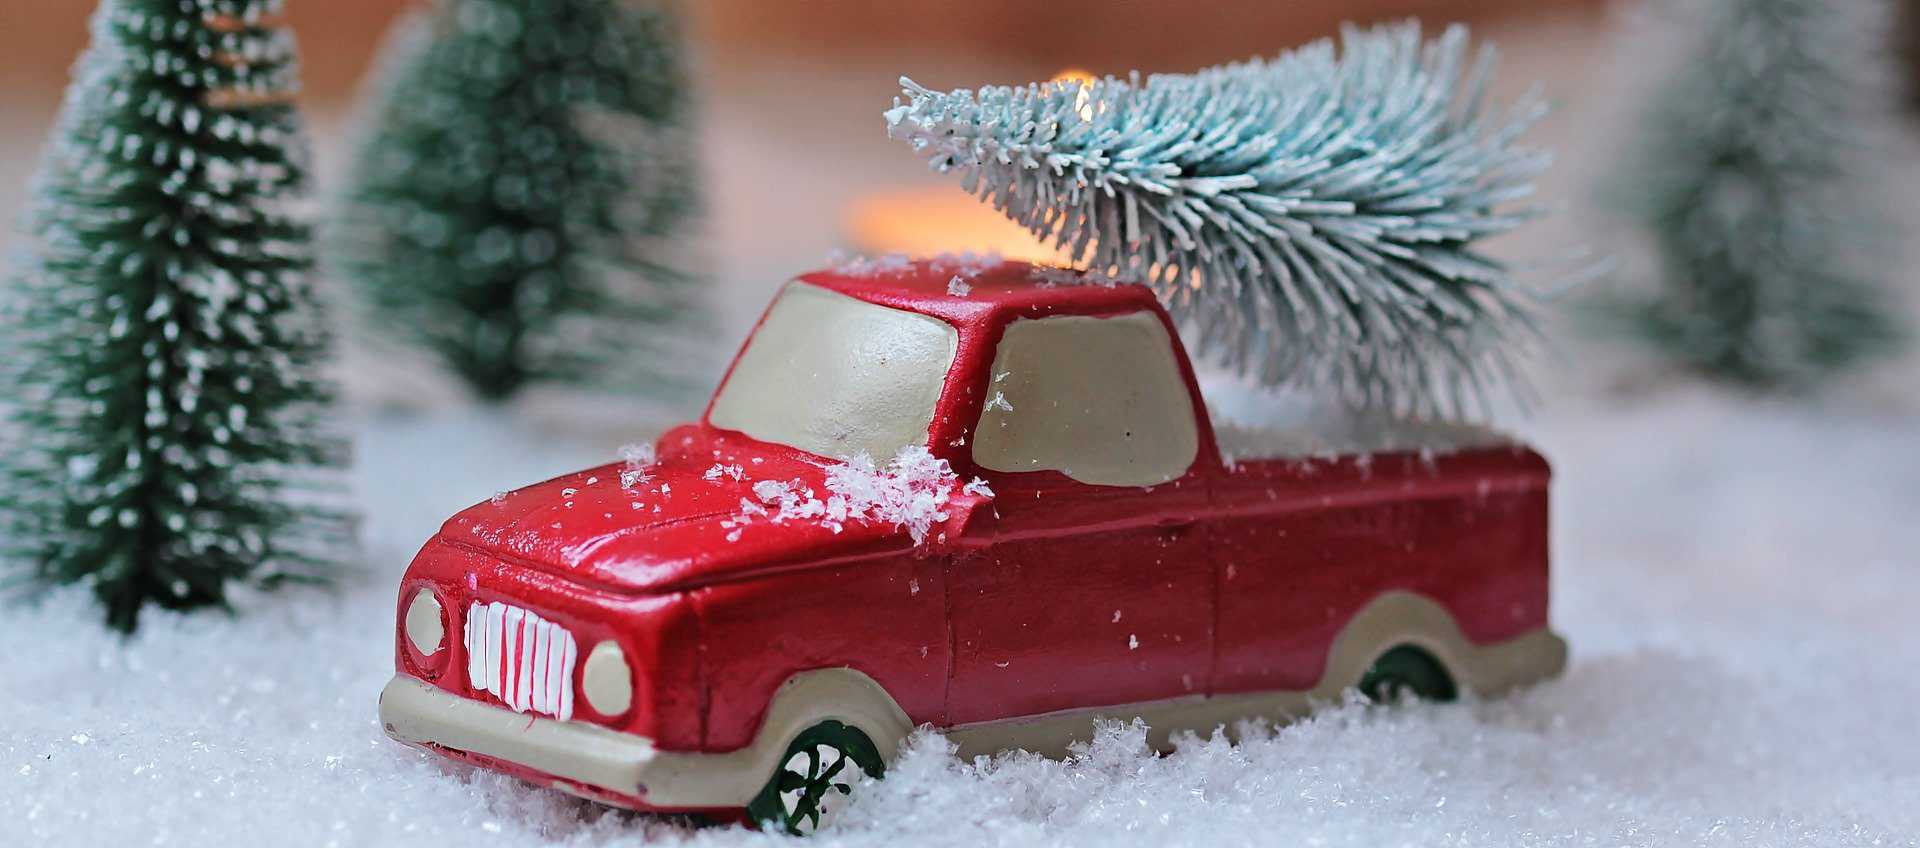 figurine of red truck with Christmas tree in back in snow